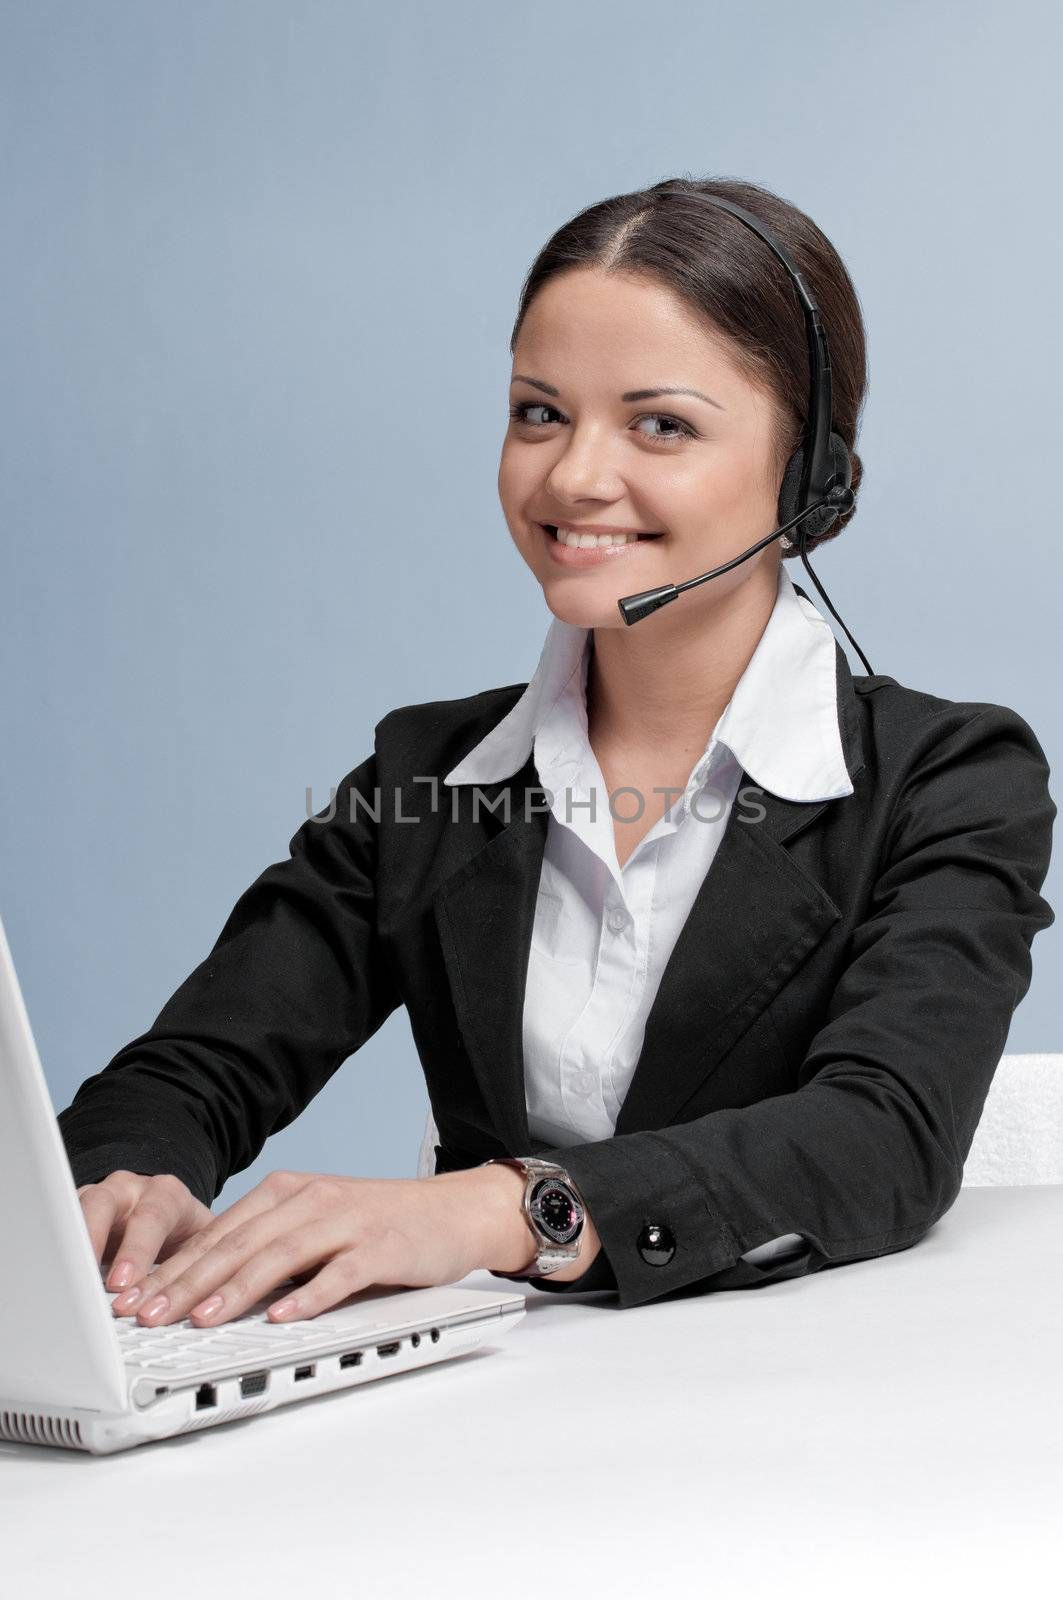 Busy business woman in office place communicate by wireless headset over white table, laptop and diary